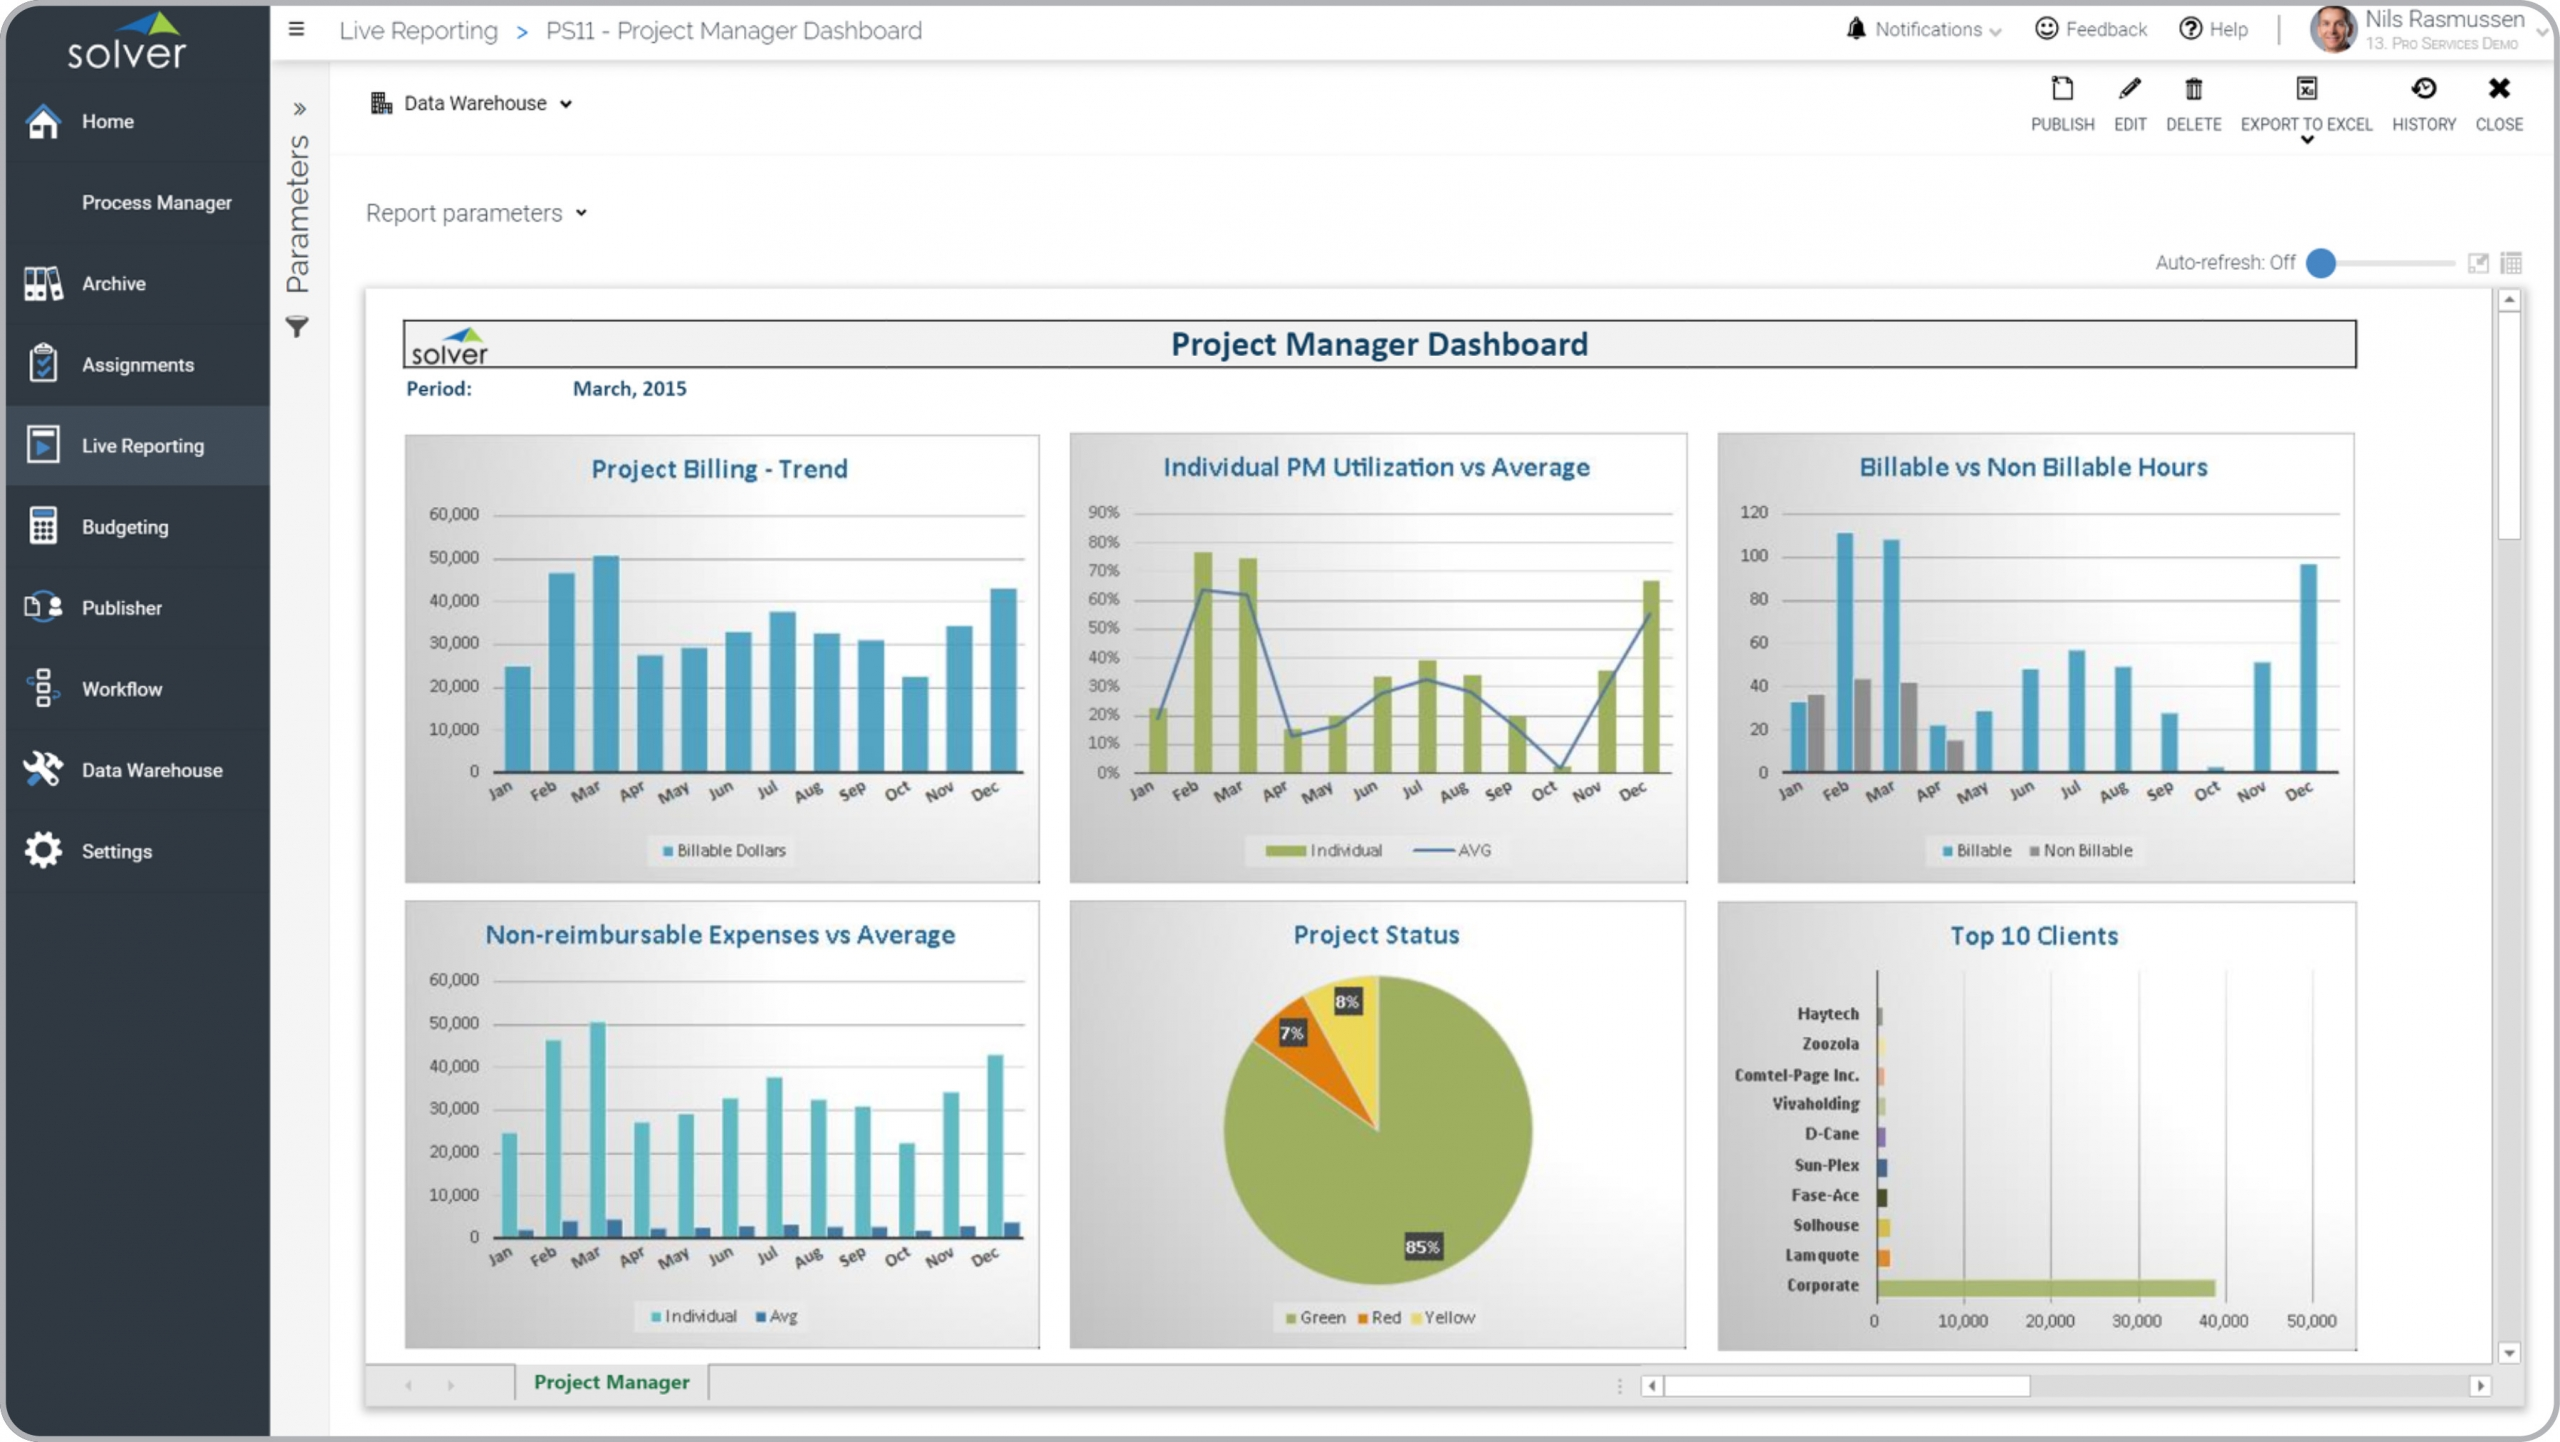 Professional Services – Project Manager Dashboard